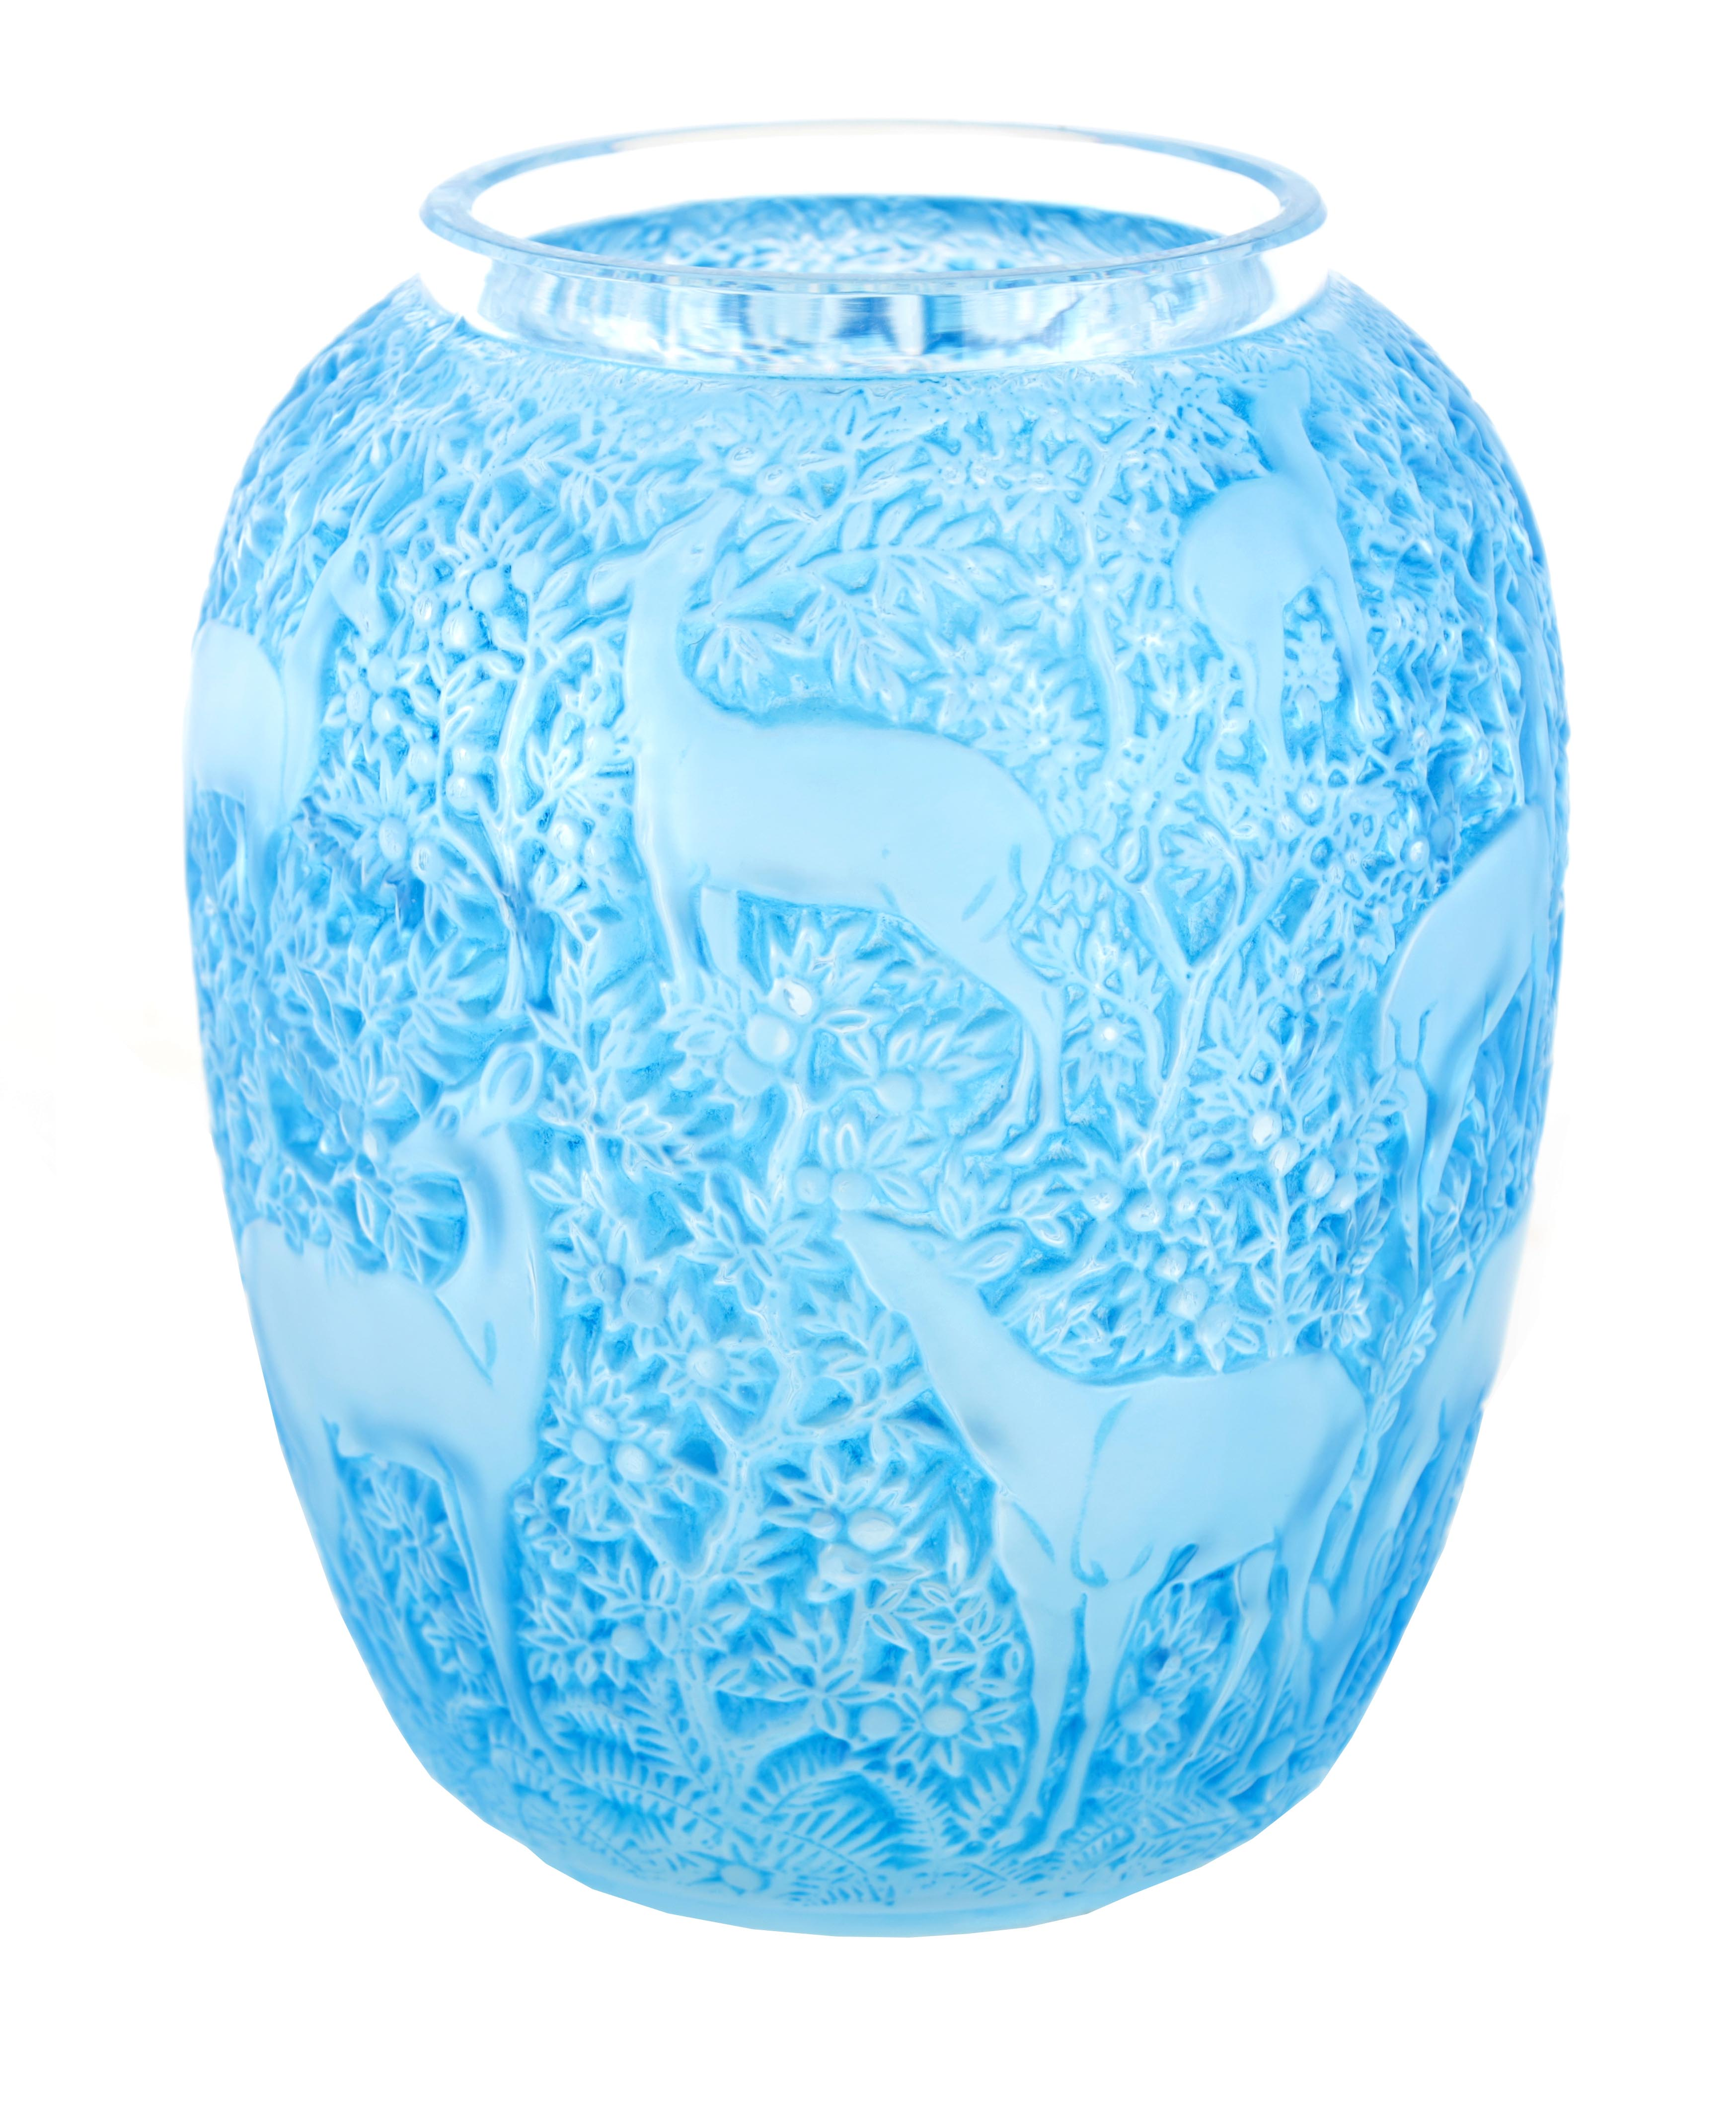 R LALIQUE, A BLUE STAINED 'BICHES' GLASS VASE of ovoid form with inward curved rim and collared neck